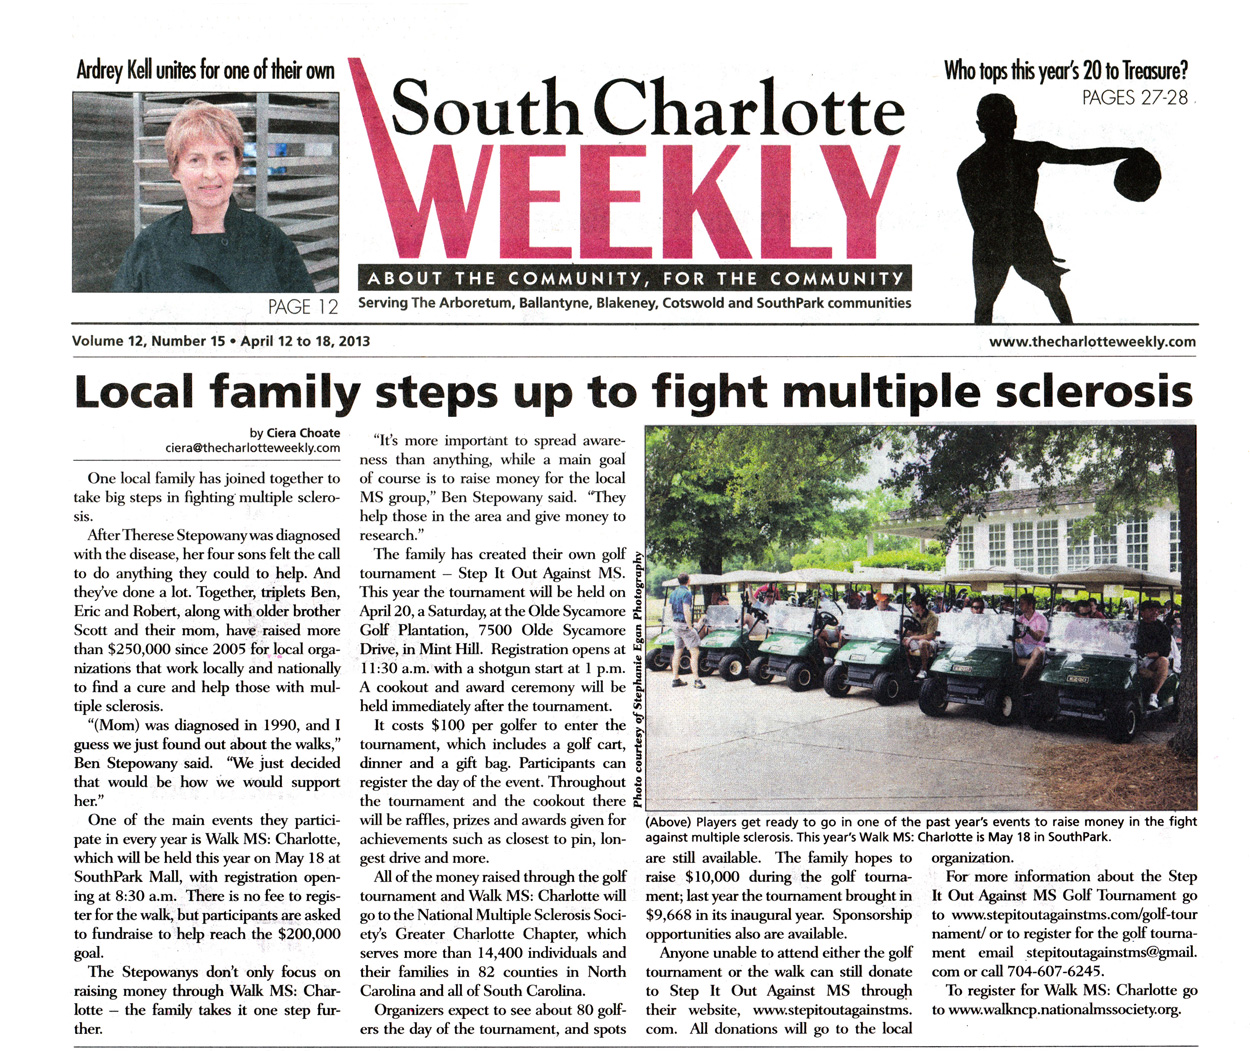 web_SouthCLT_StepItOutArticle_2013